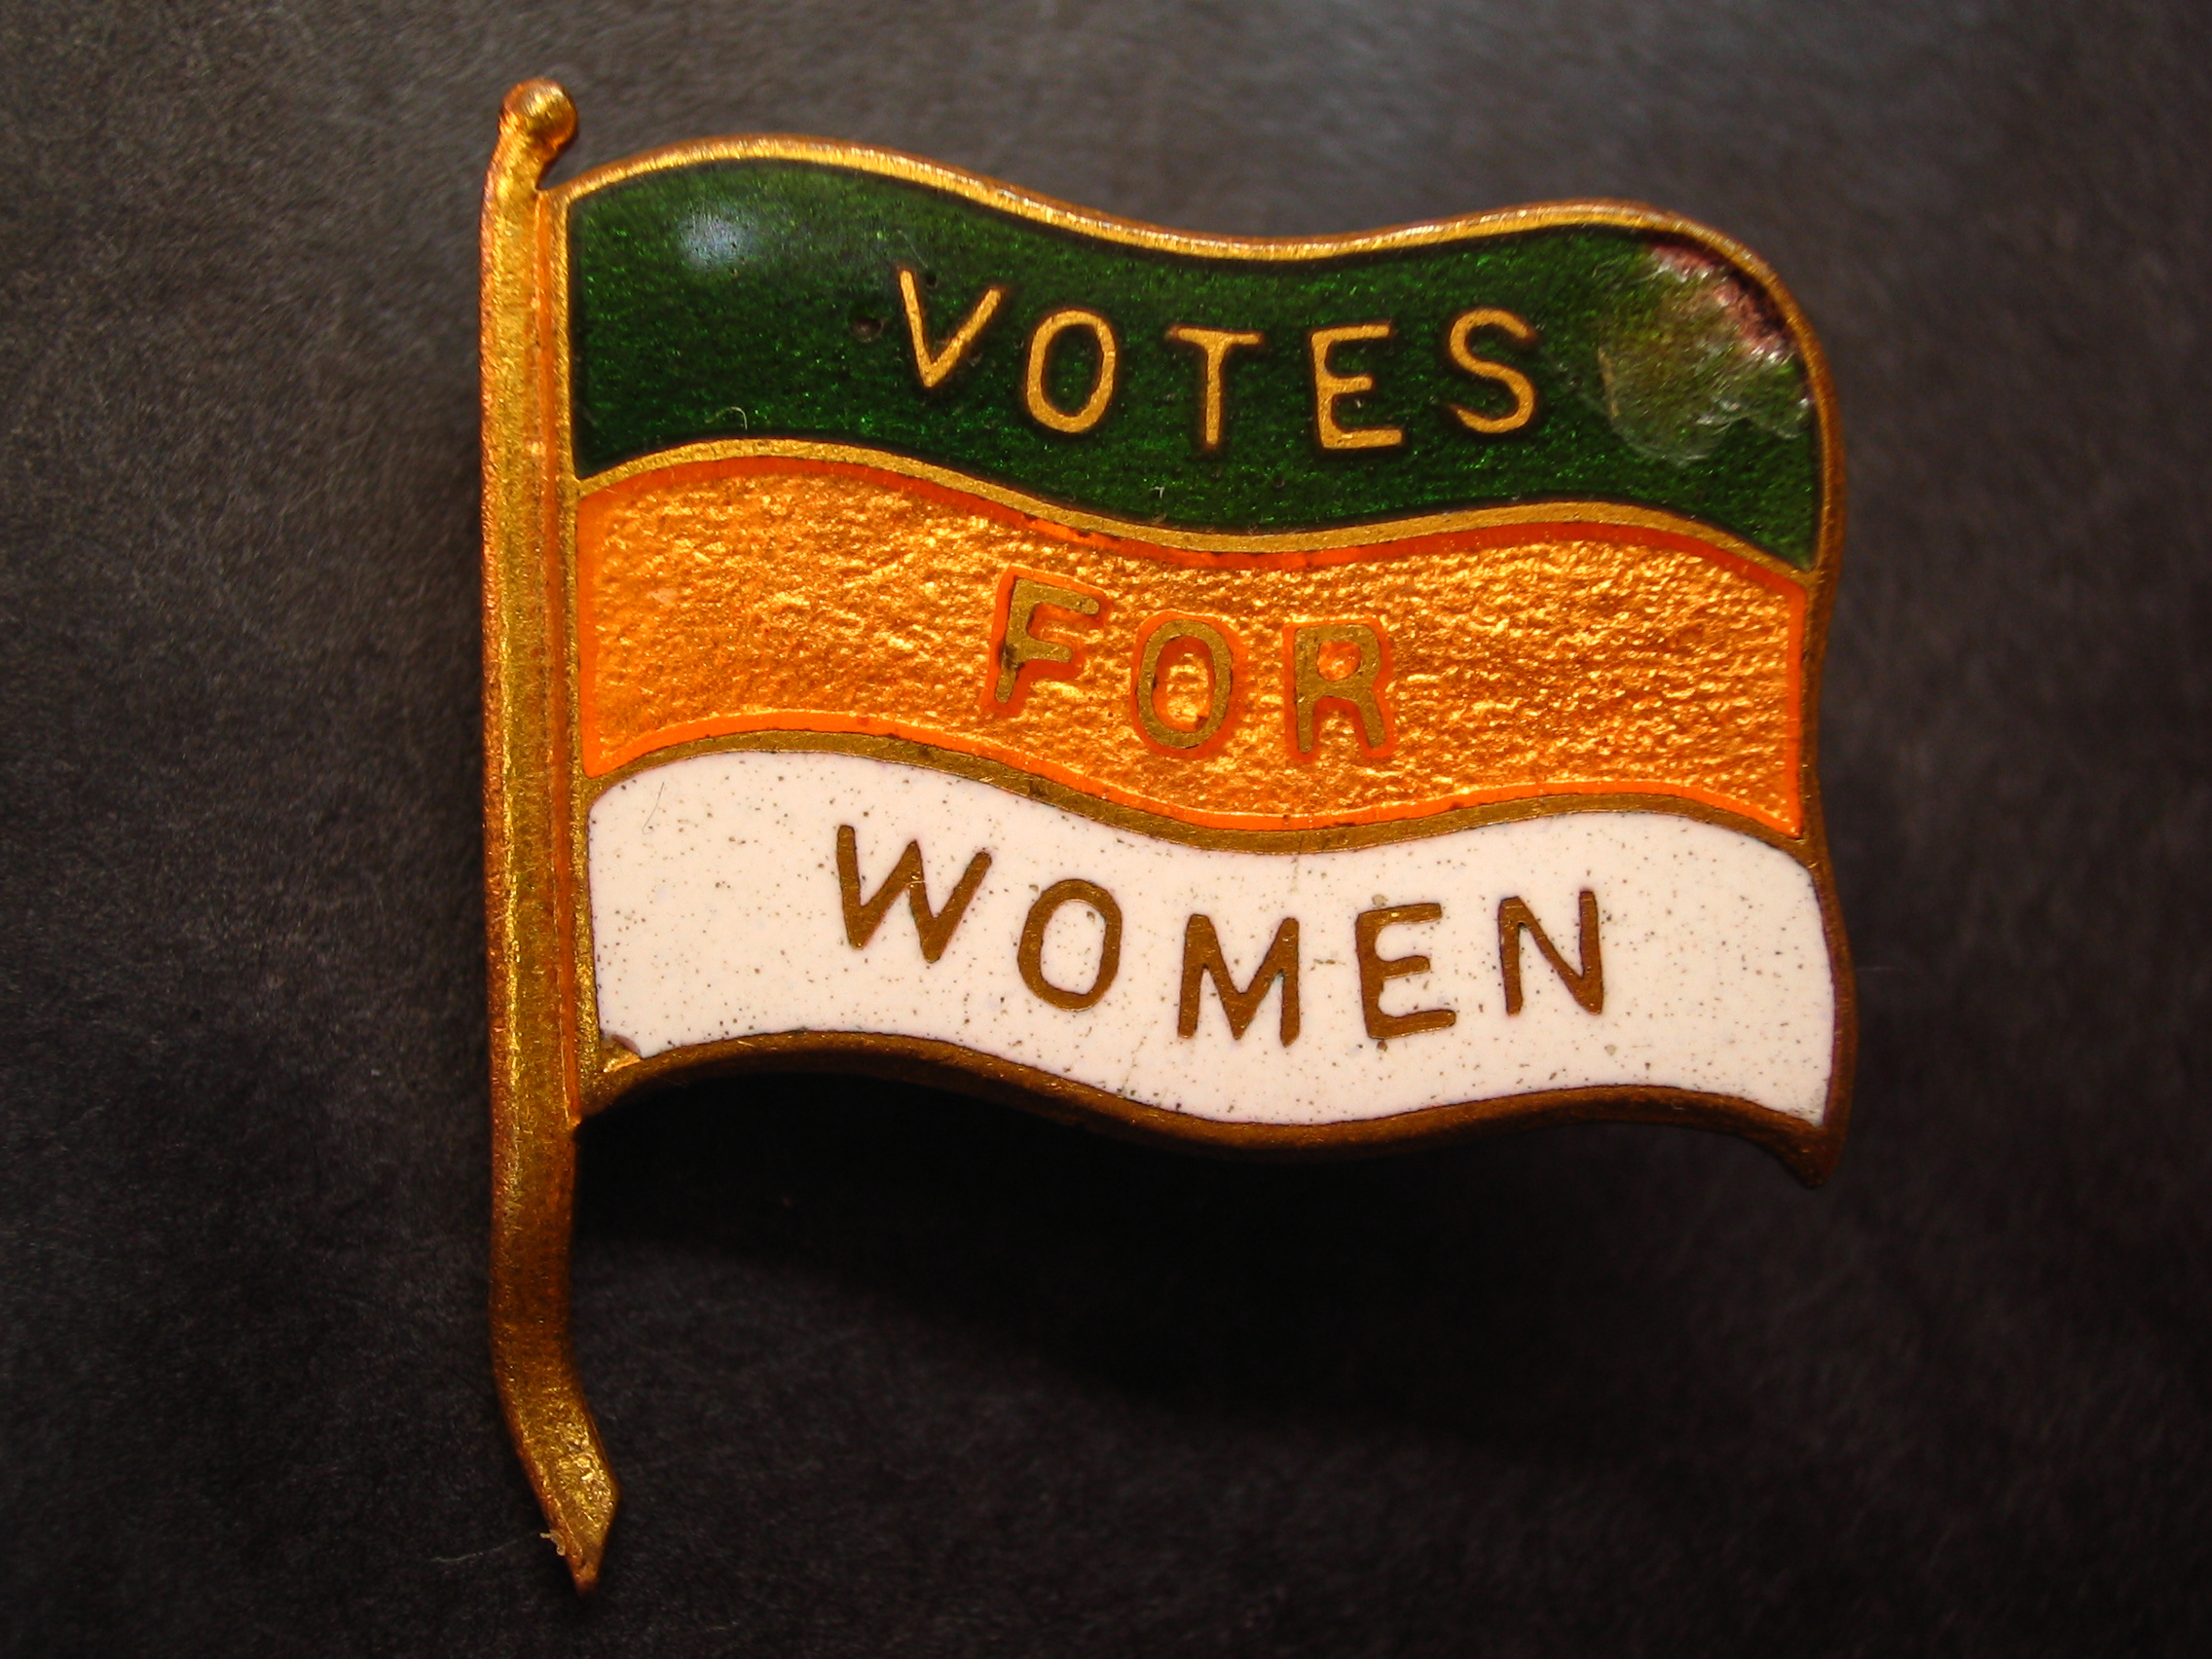 edexcel history coursework votes for women assignment one  english photograph of an early 20th century british women s suffrage lapel pin